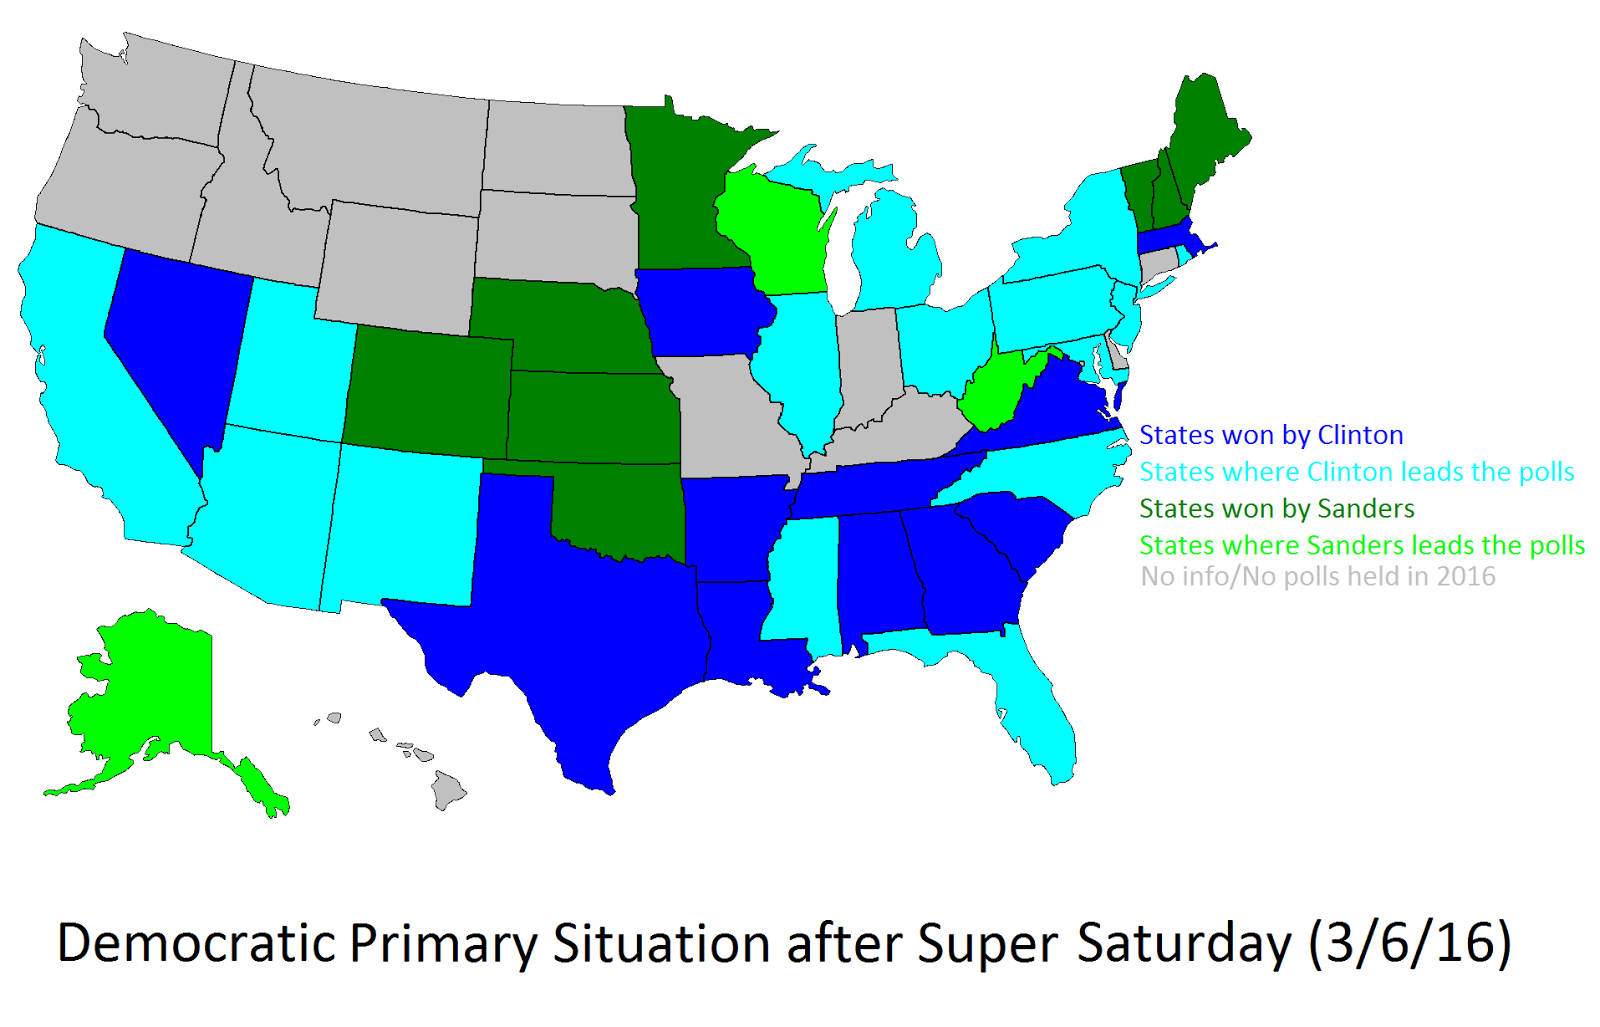 Democratic Primary Situation after Super Saturday